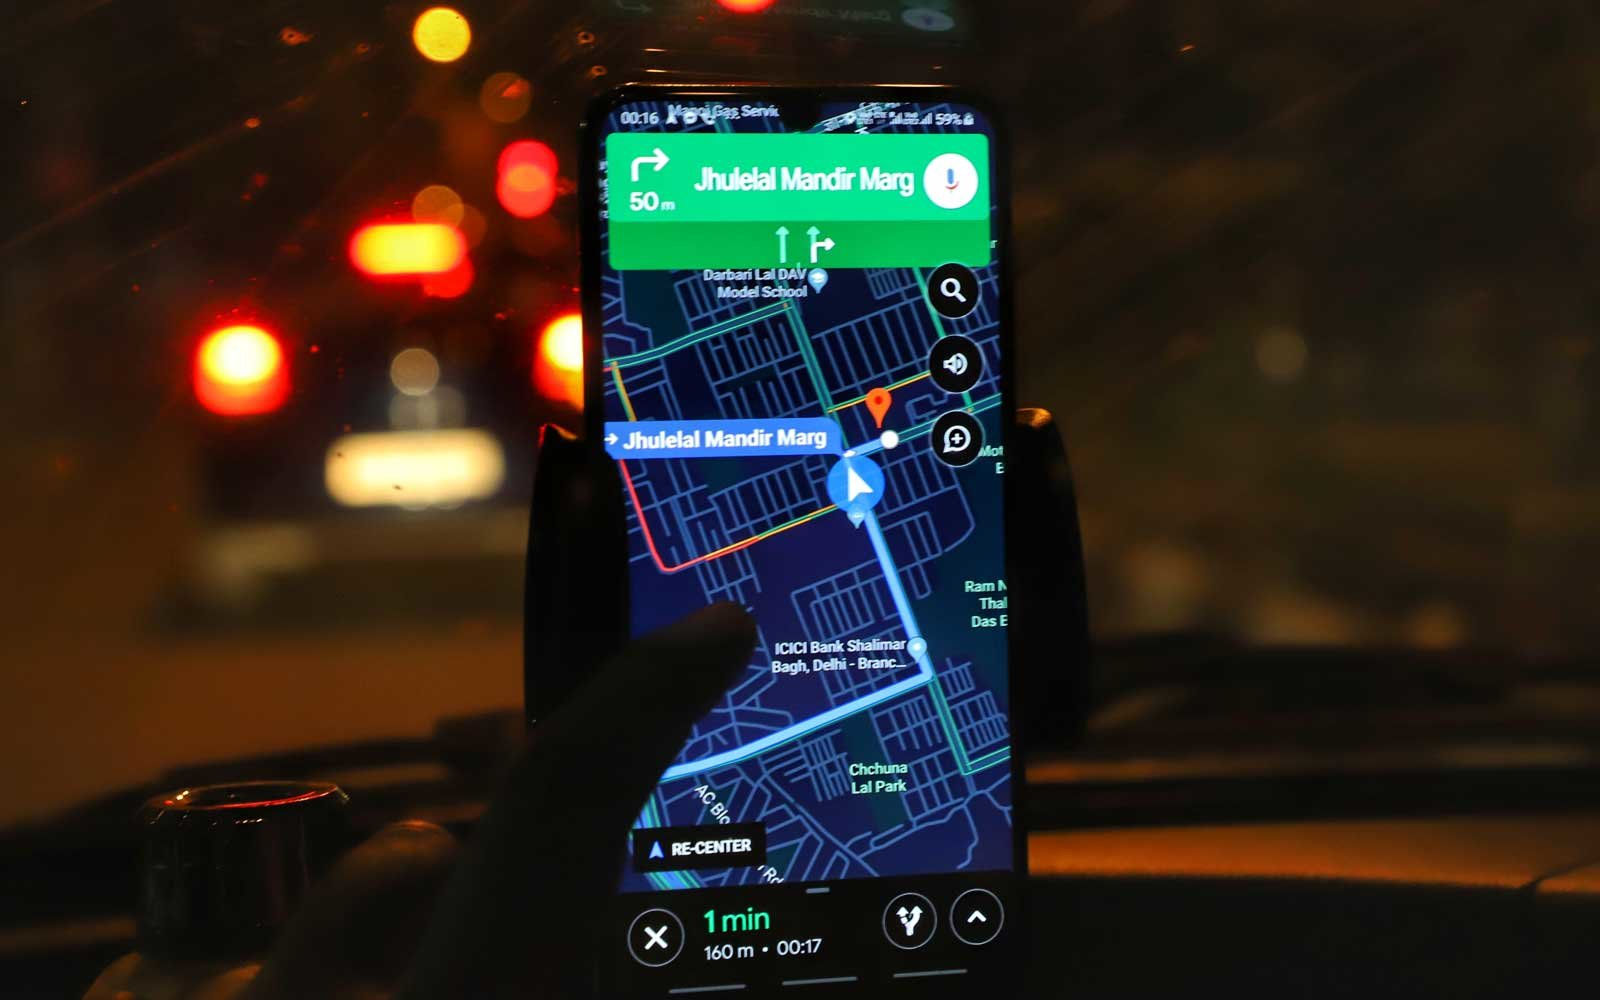 Google Maps is working on a feature that could make navigating at night safer